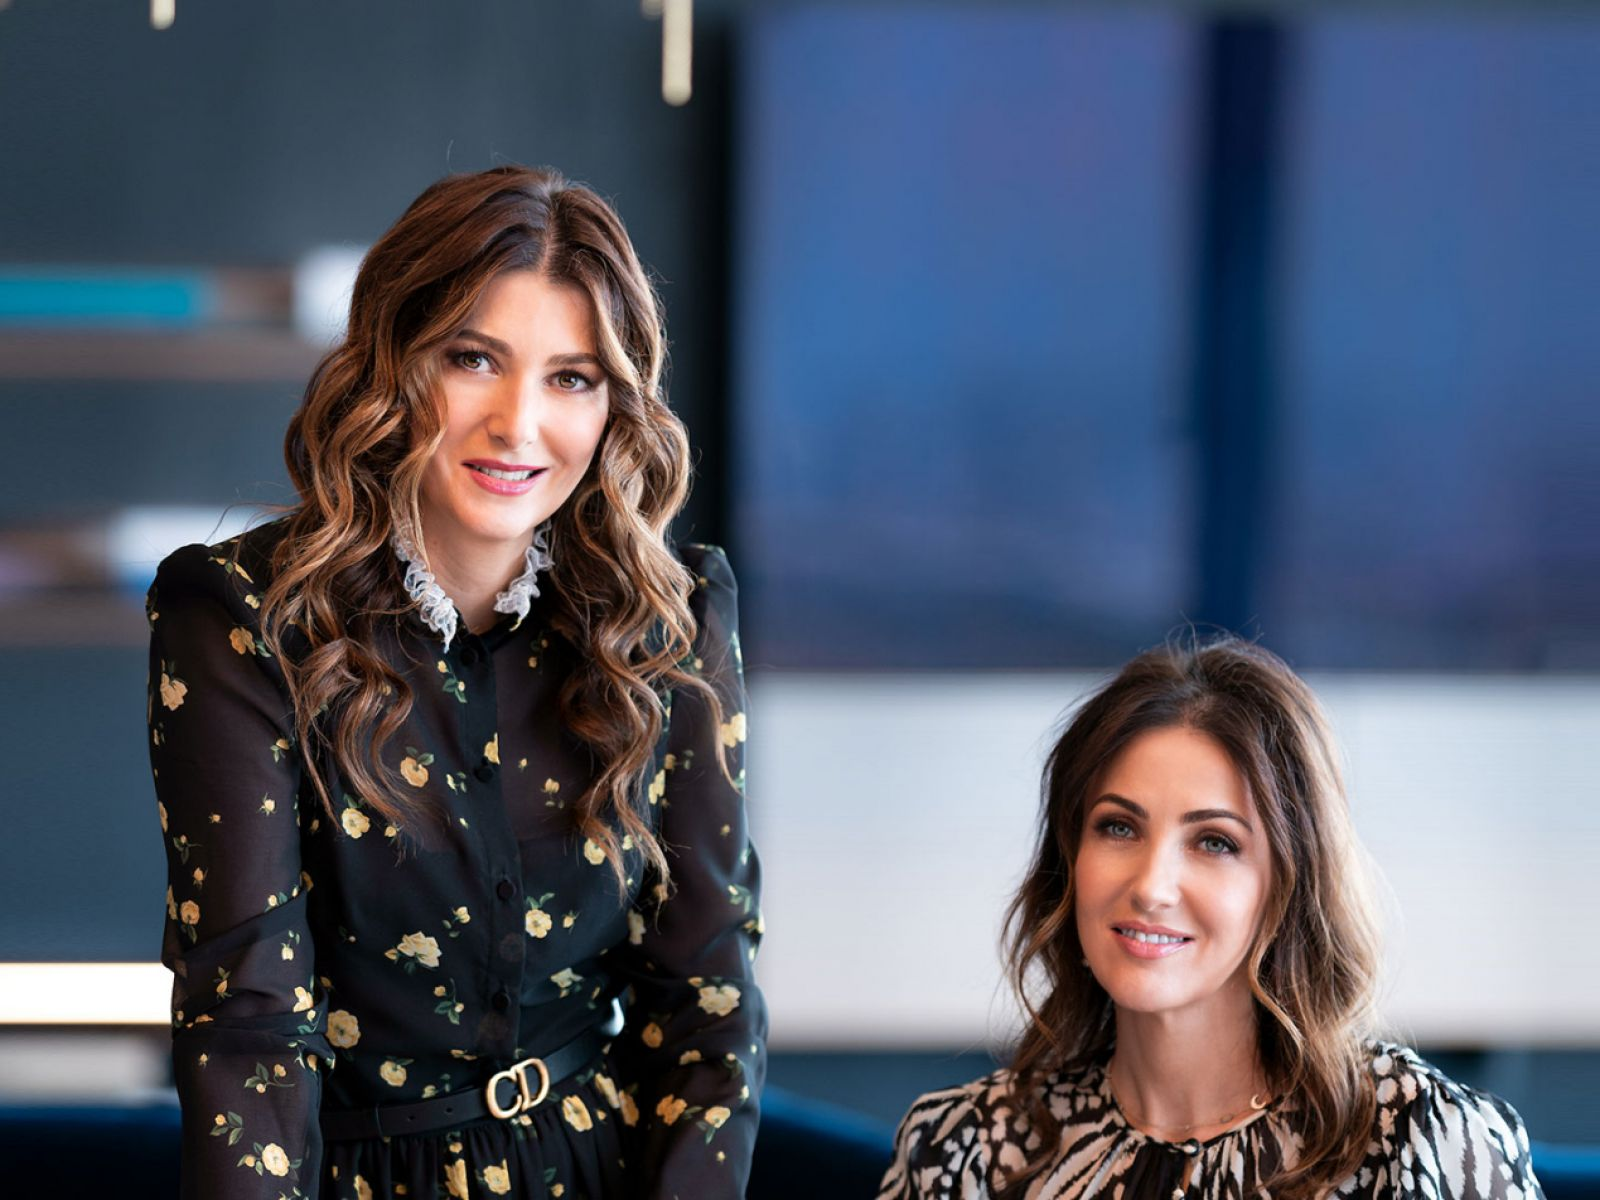 Cristina Căpitanu and Elena Oancea about smart living concepts in Casa Lux